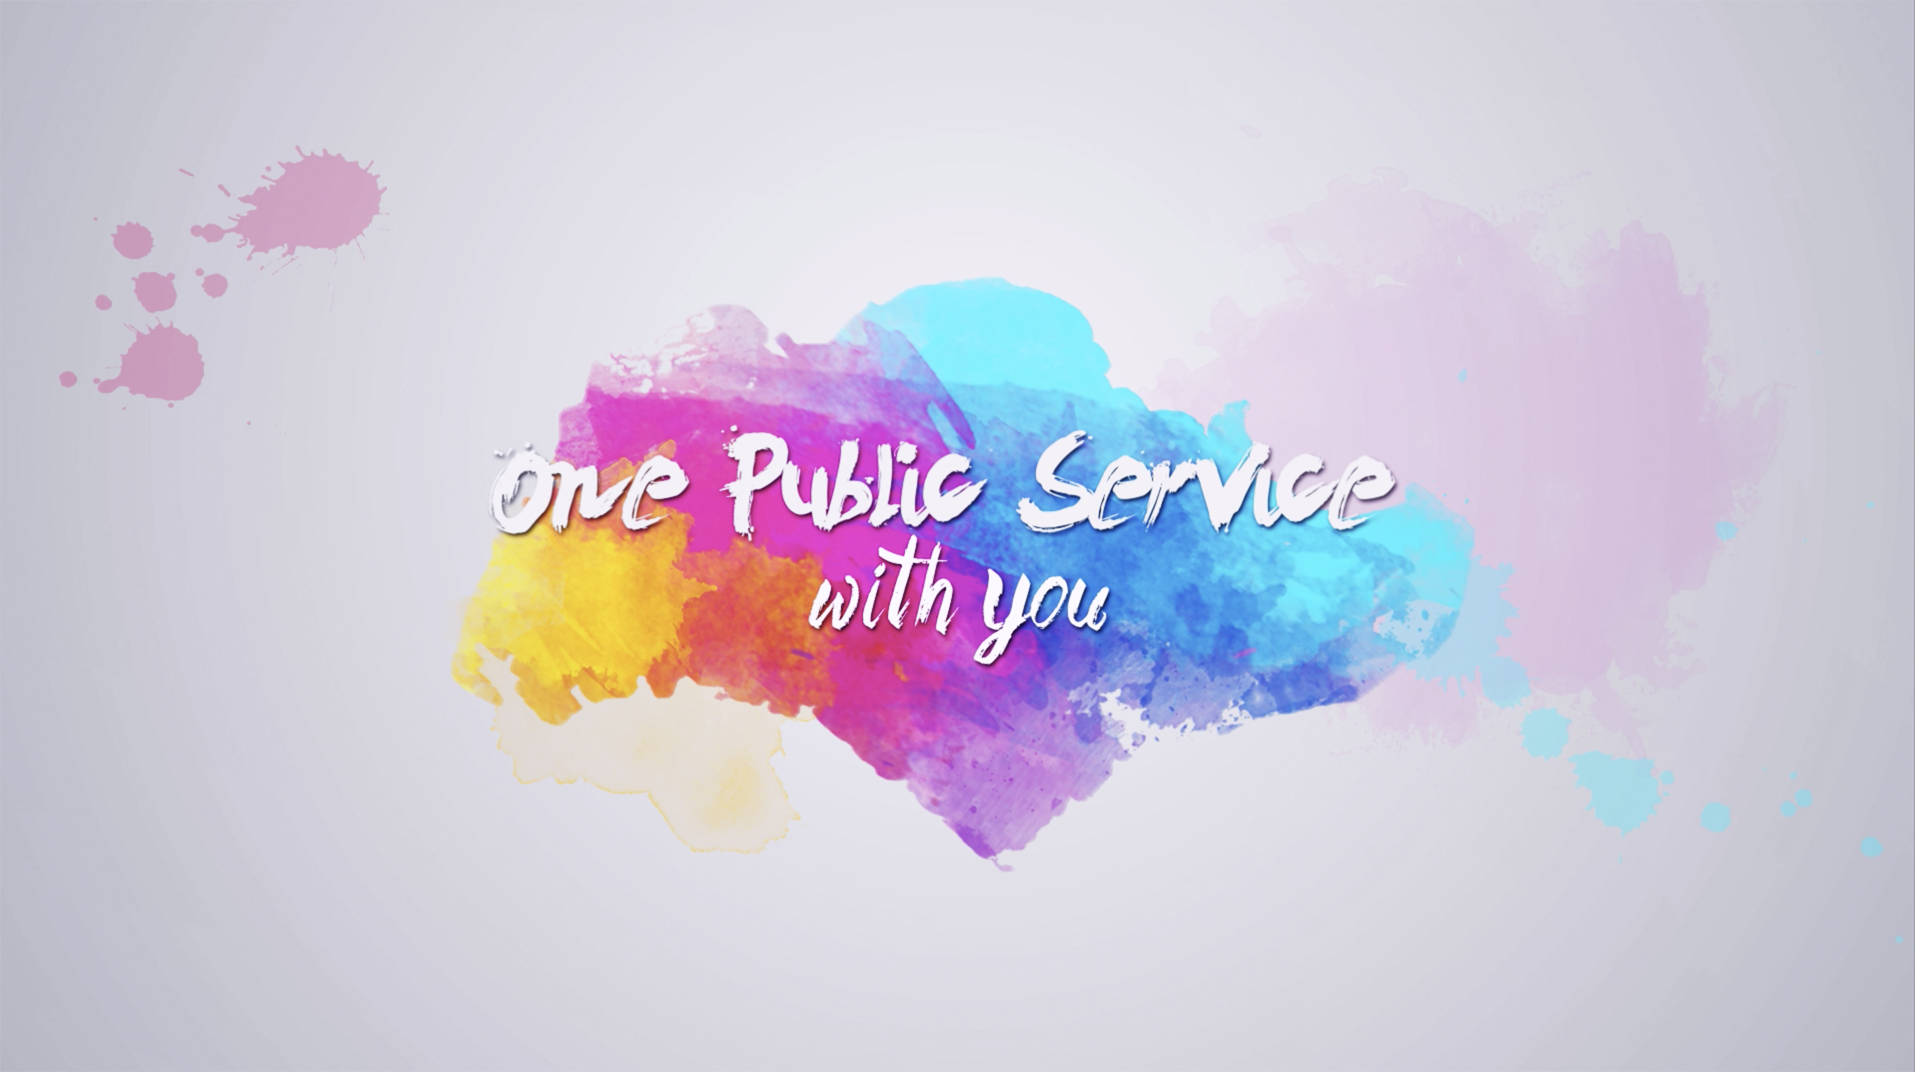 One Public Service With You